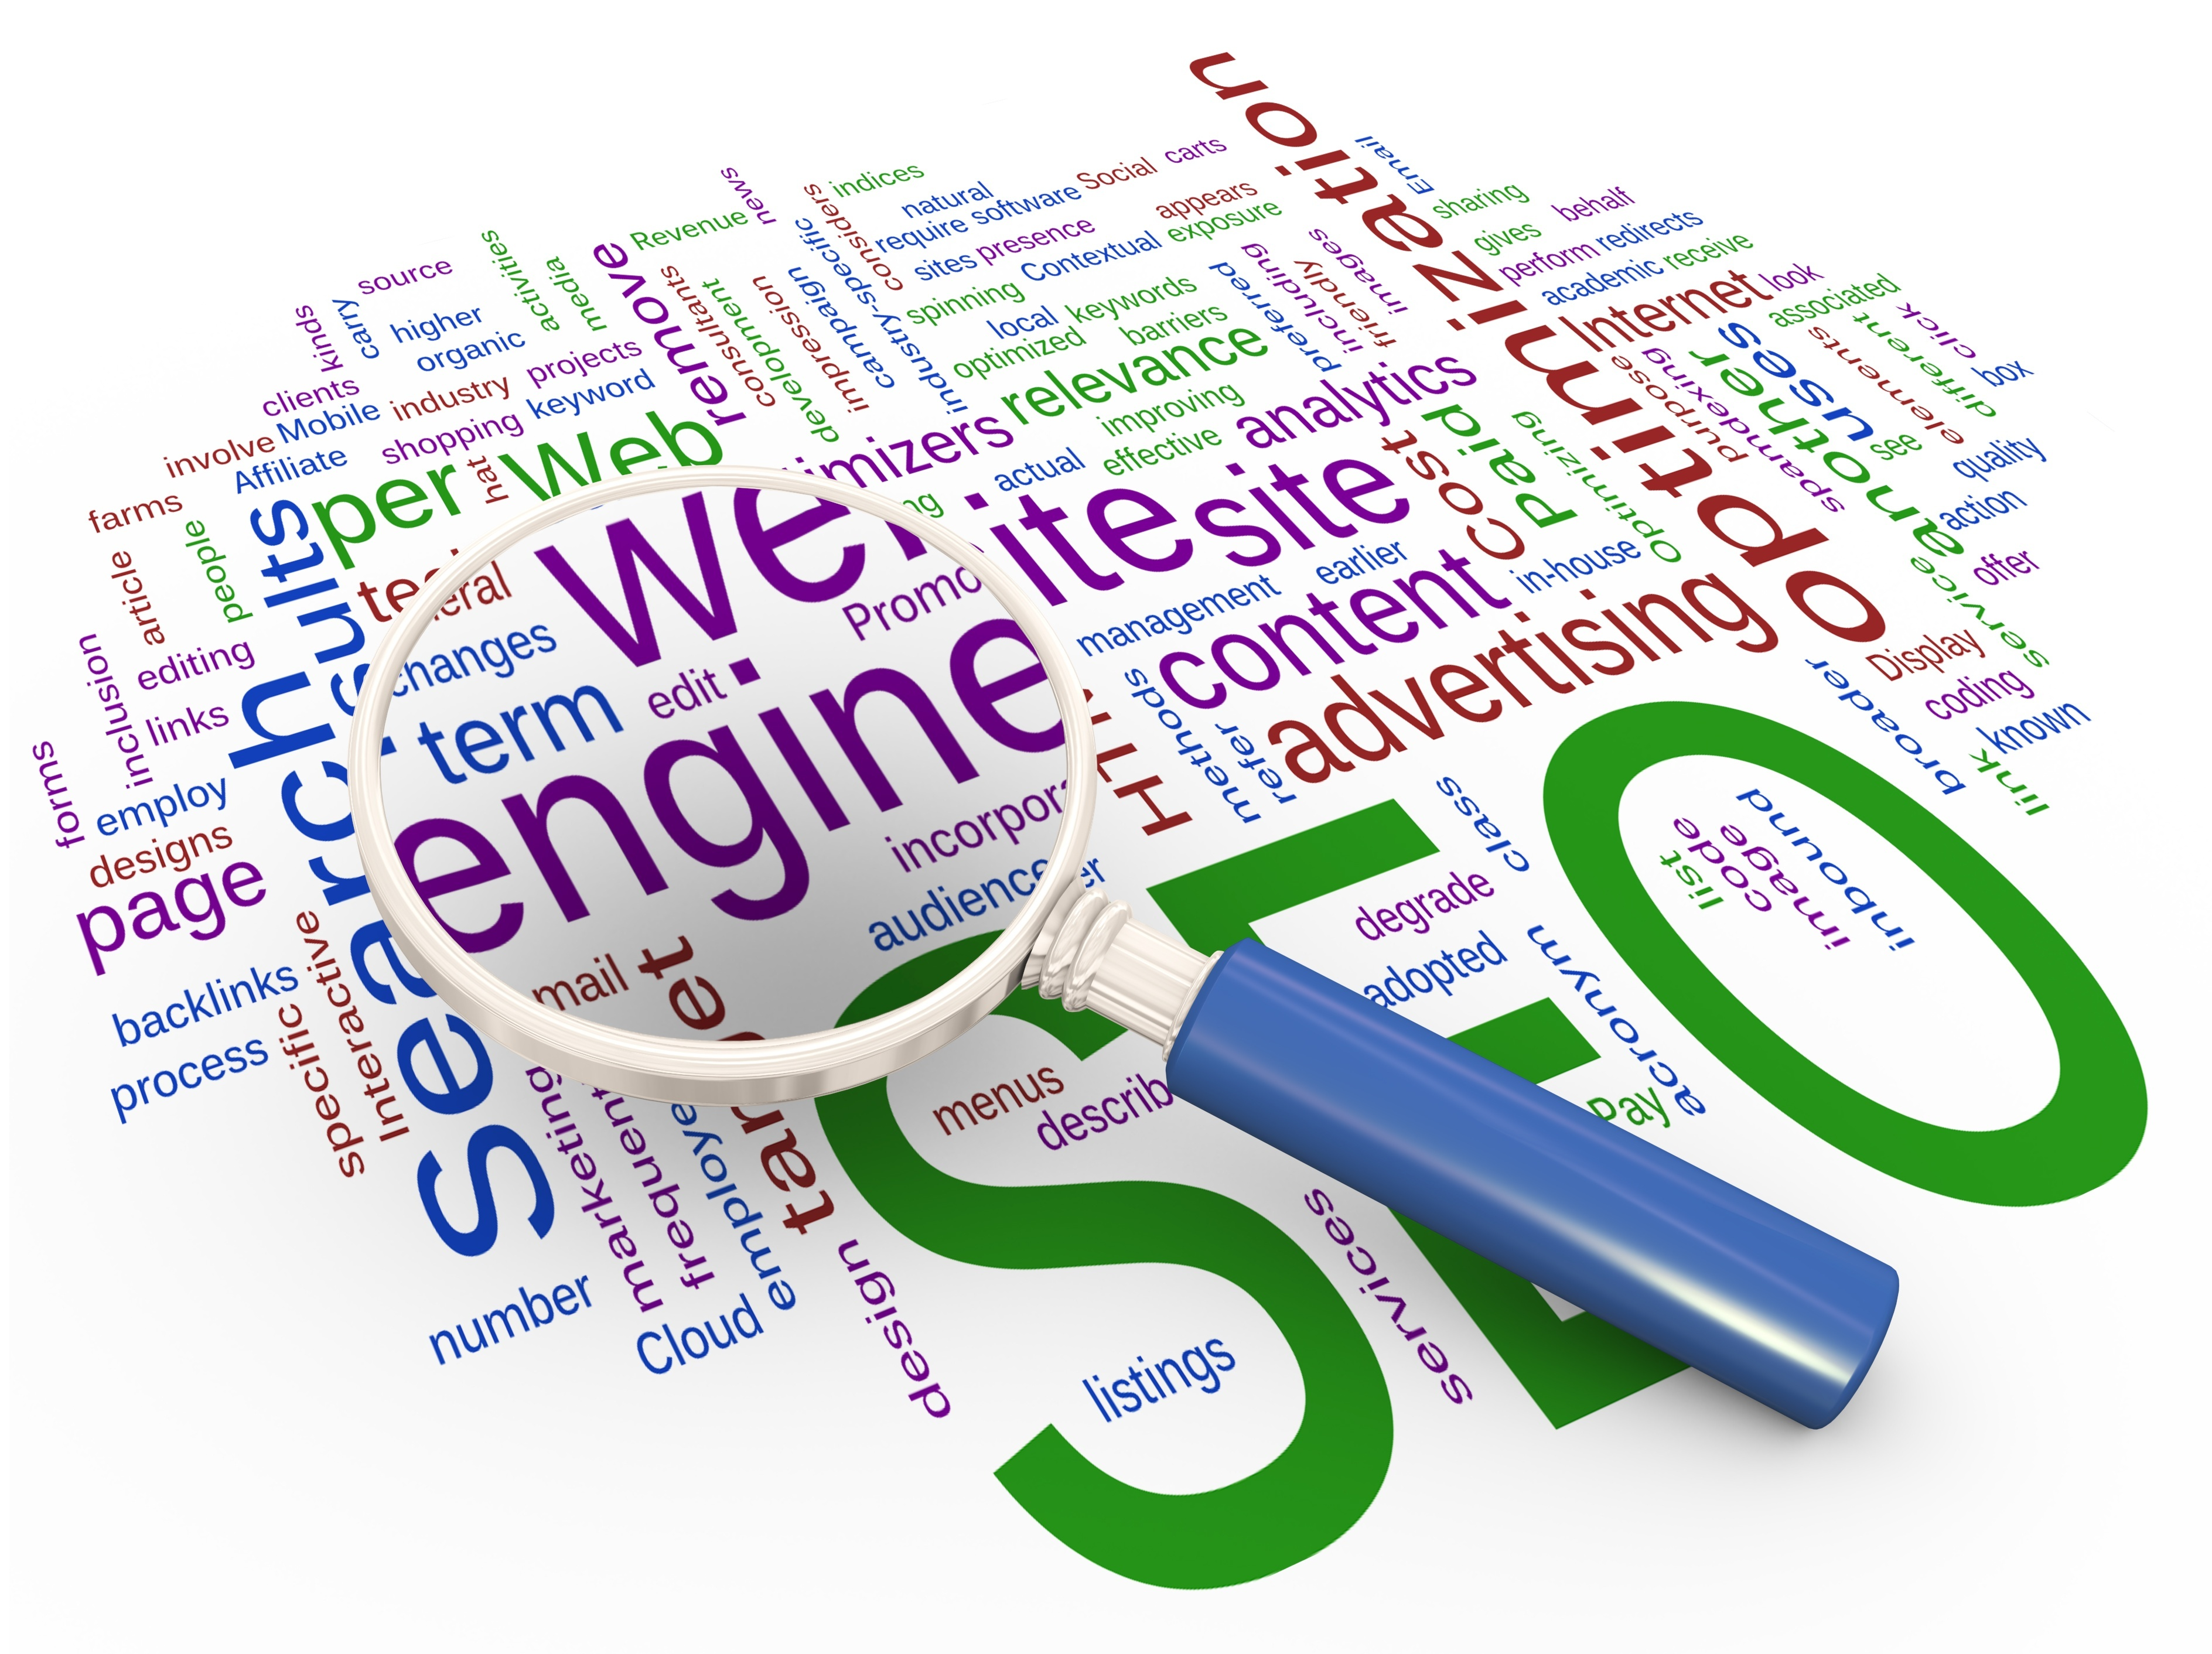 Partner with a Digital Marketing Agency in Colorado Springs CO that You Can Rely On